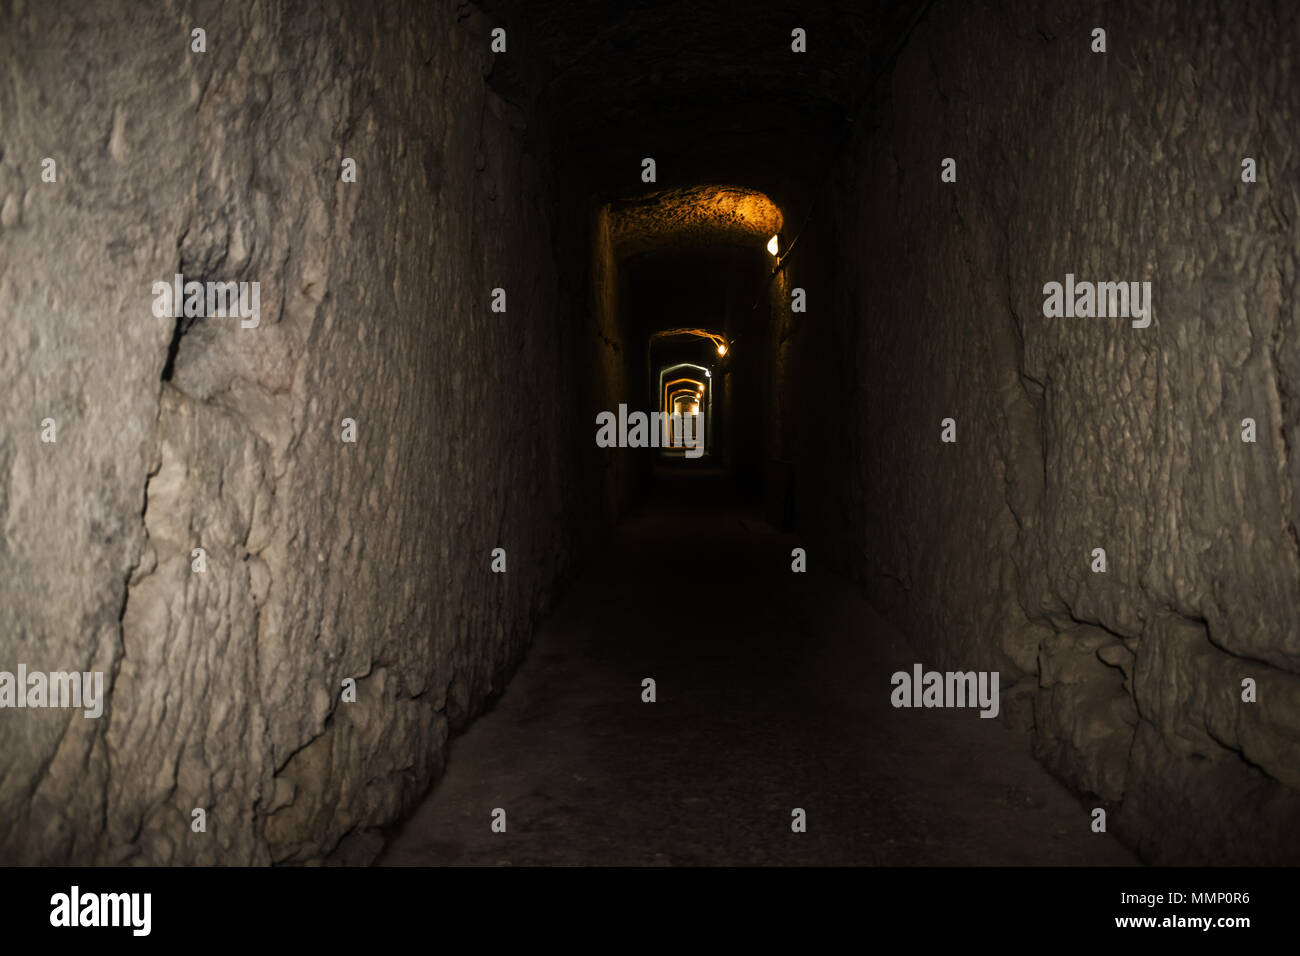 An underground tunnel in Fort Rinella, Kalkara Malta giving the impression of a never-ending walk. - Stock Image